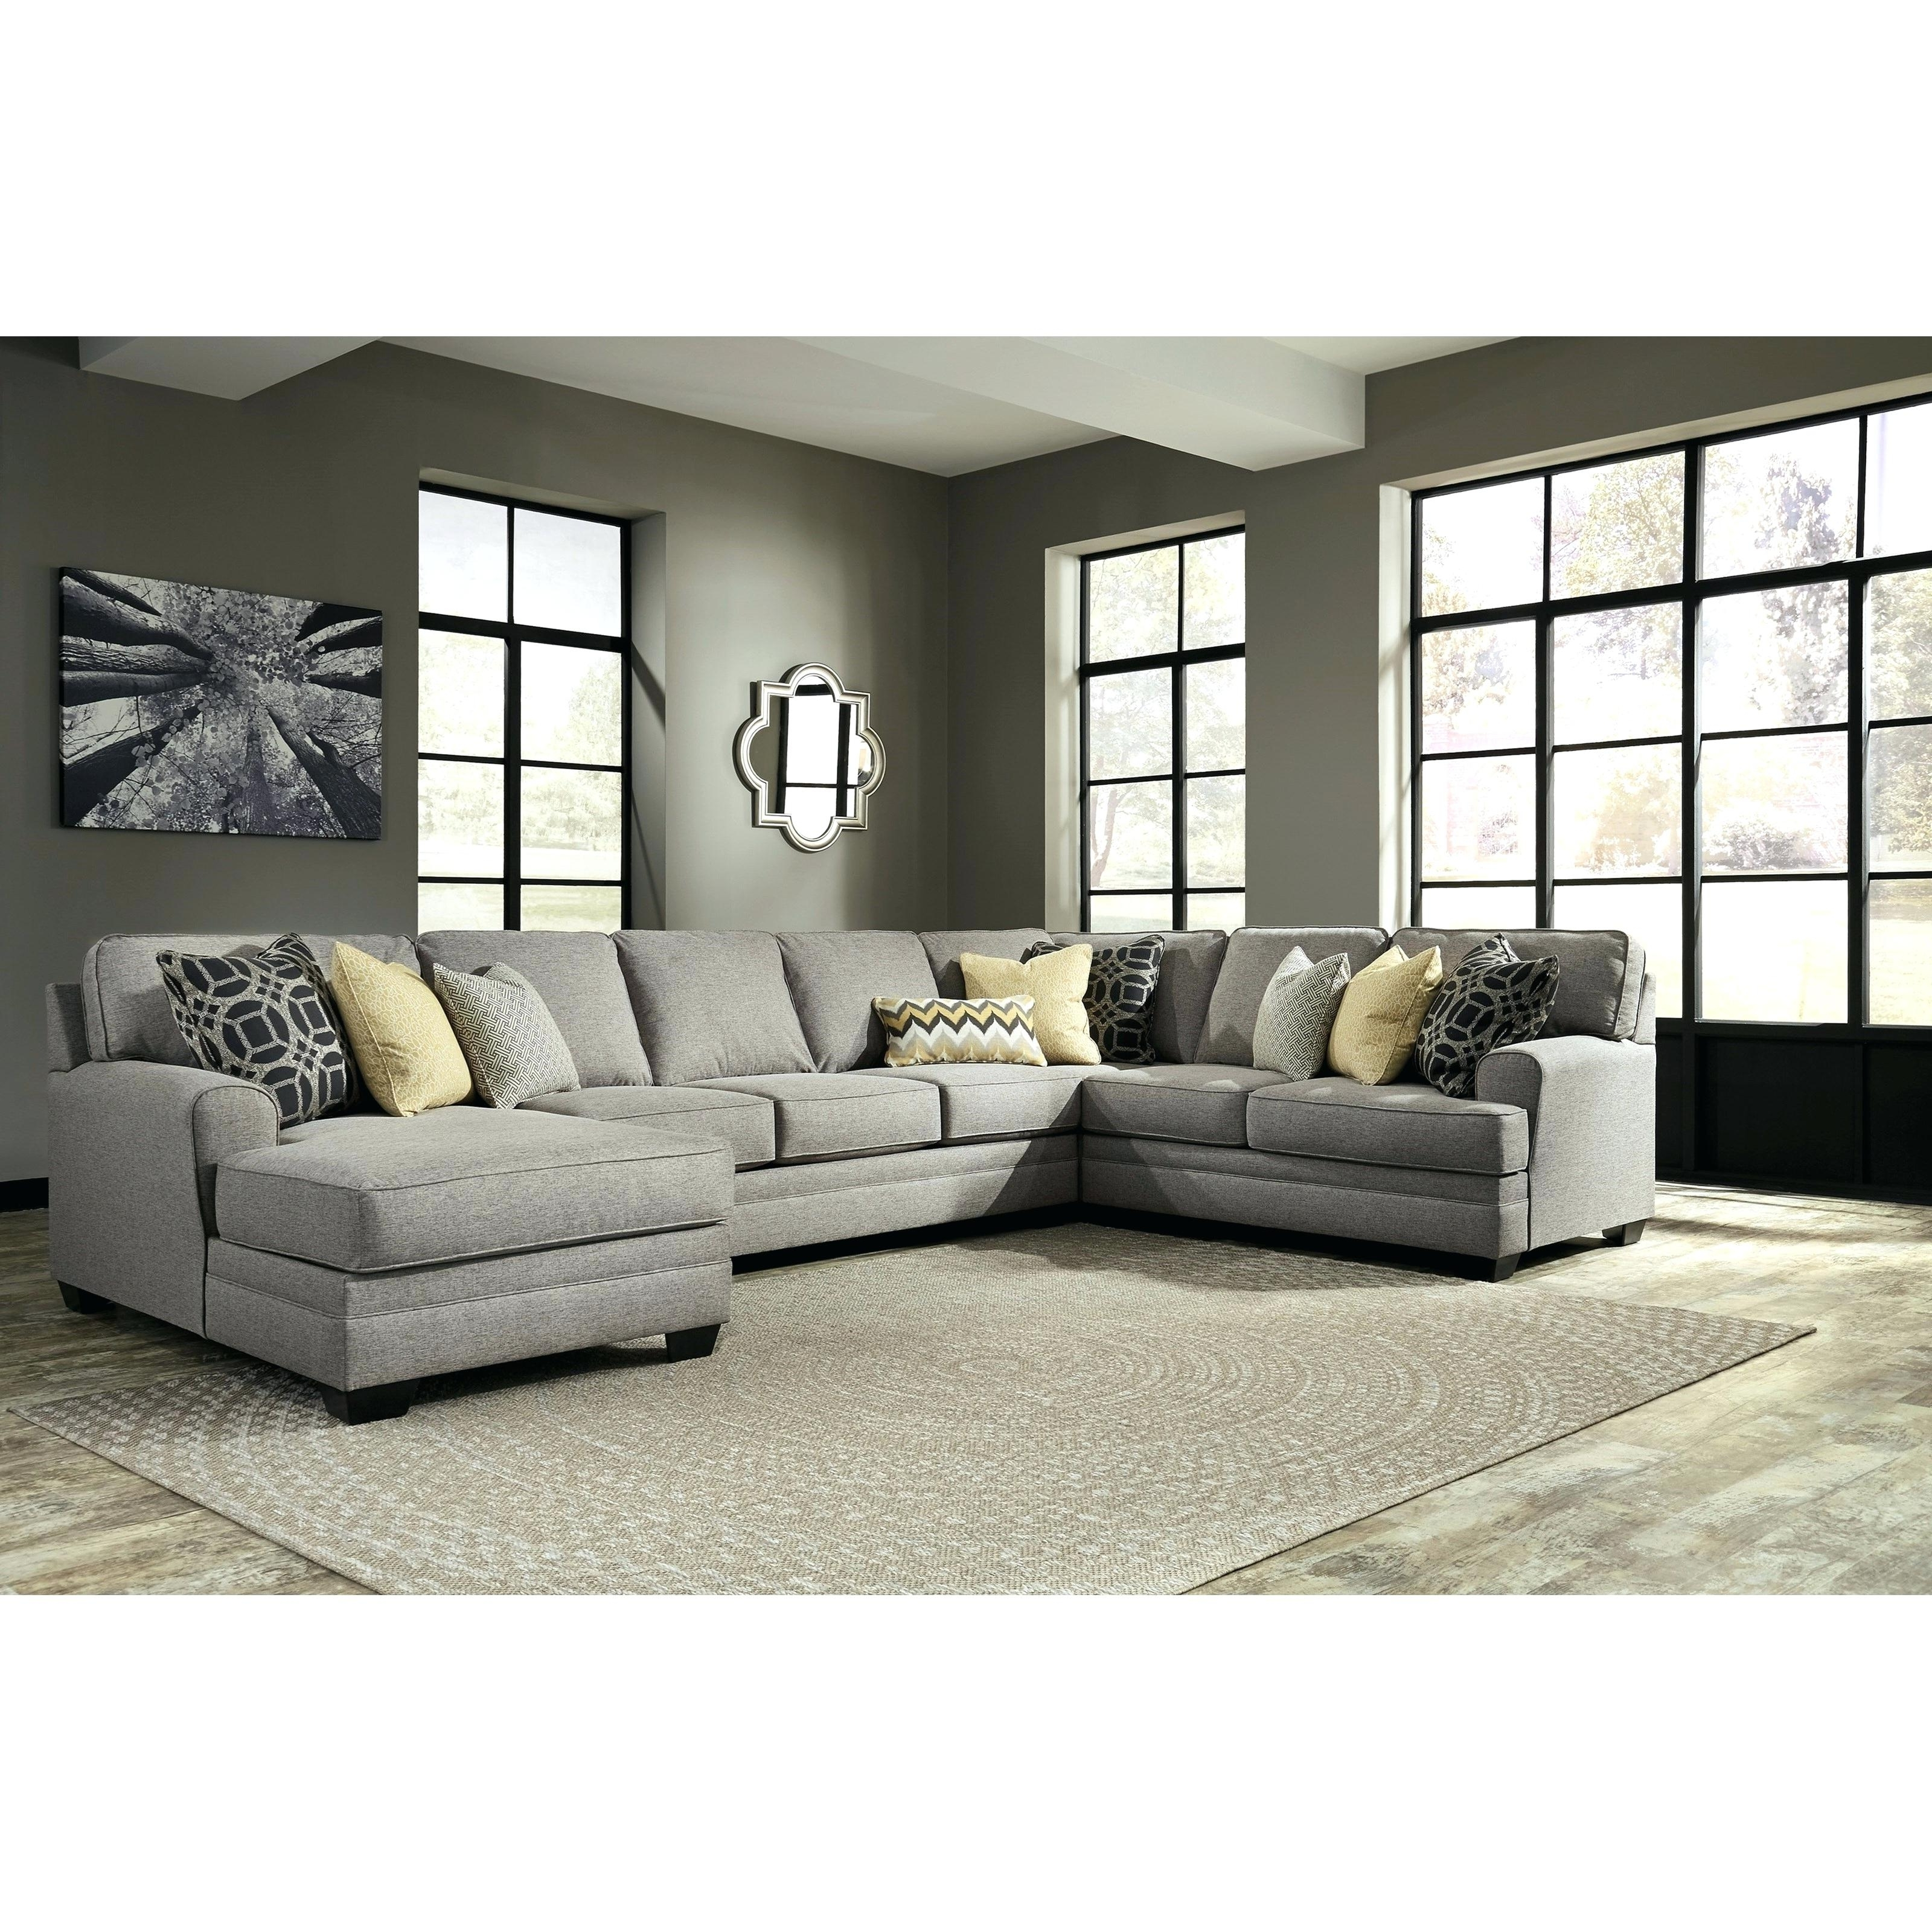 Small Armless Sofas With 2018 Armless Sofas Sectional For Small Spaces Sofa Bed Australia Sale (View 17 of 20)